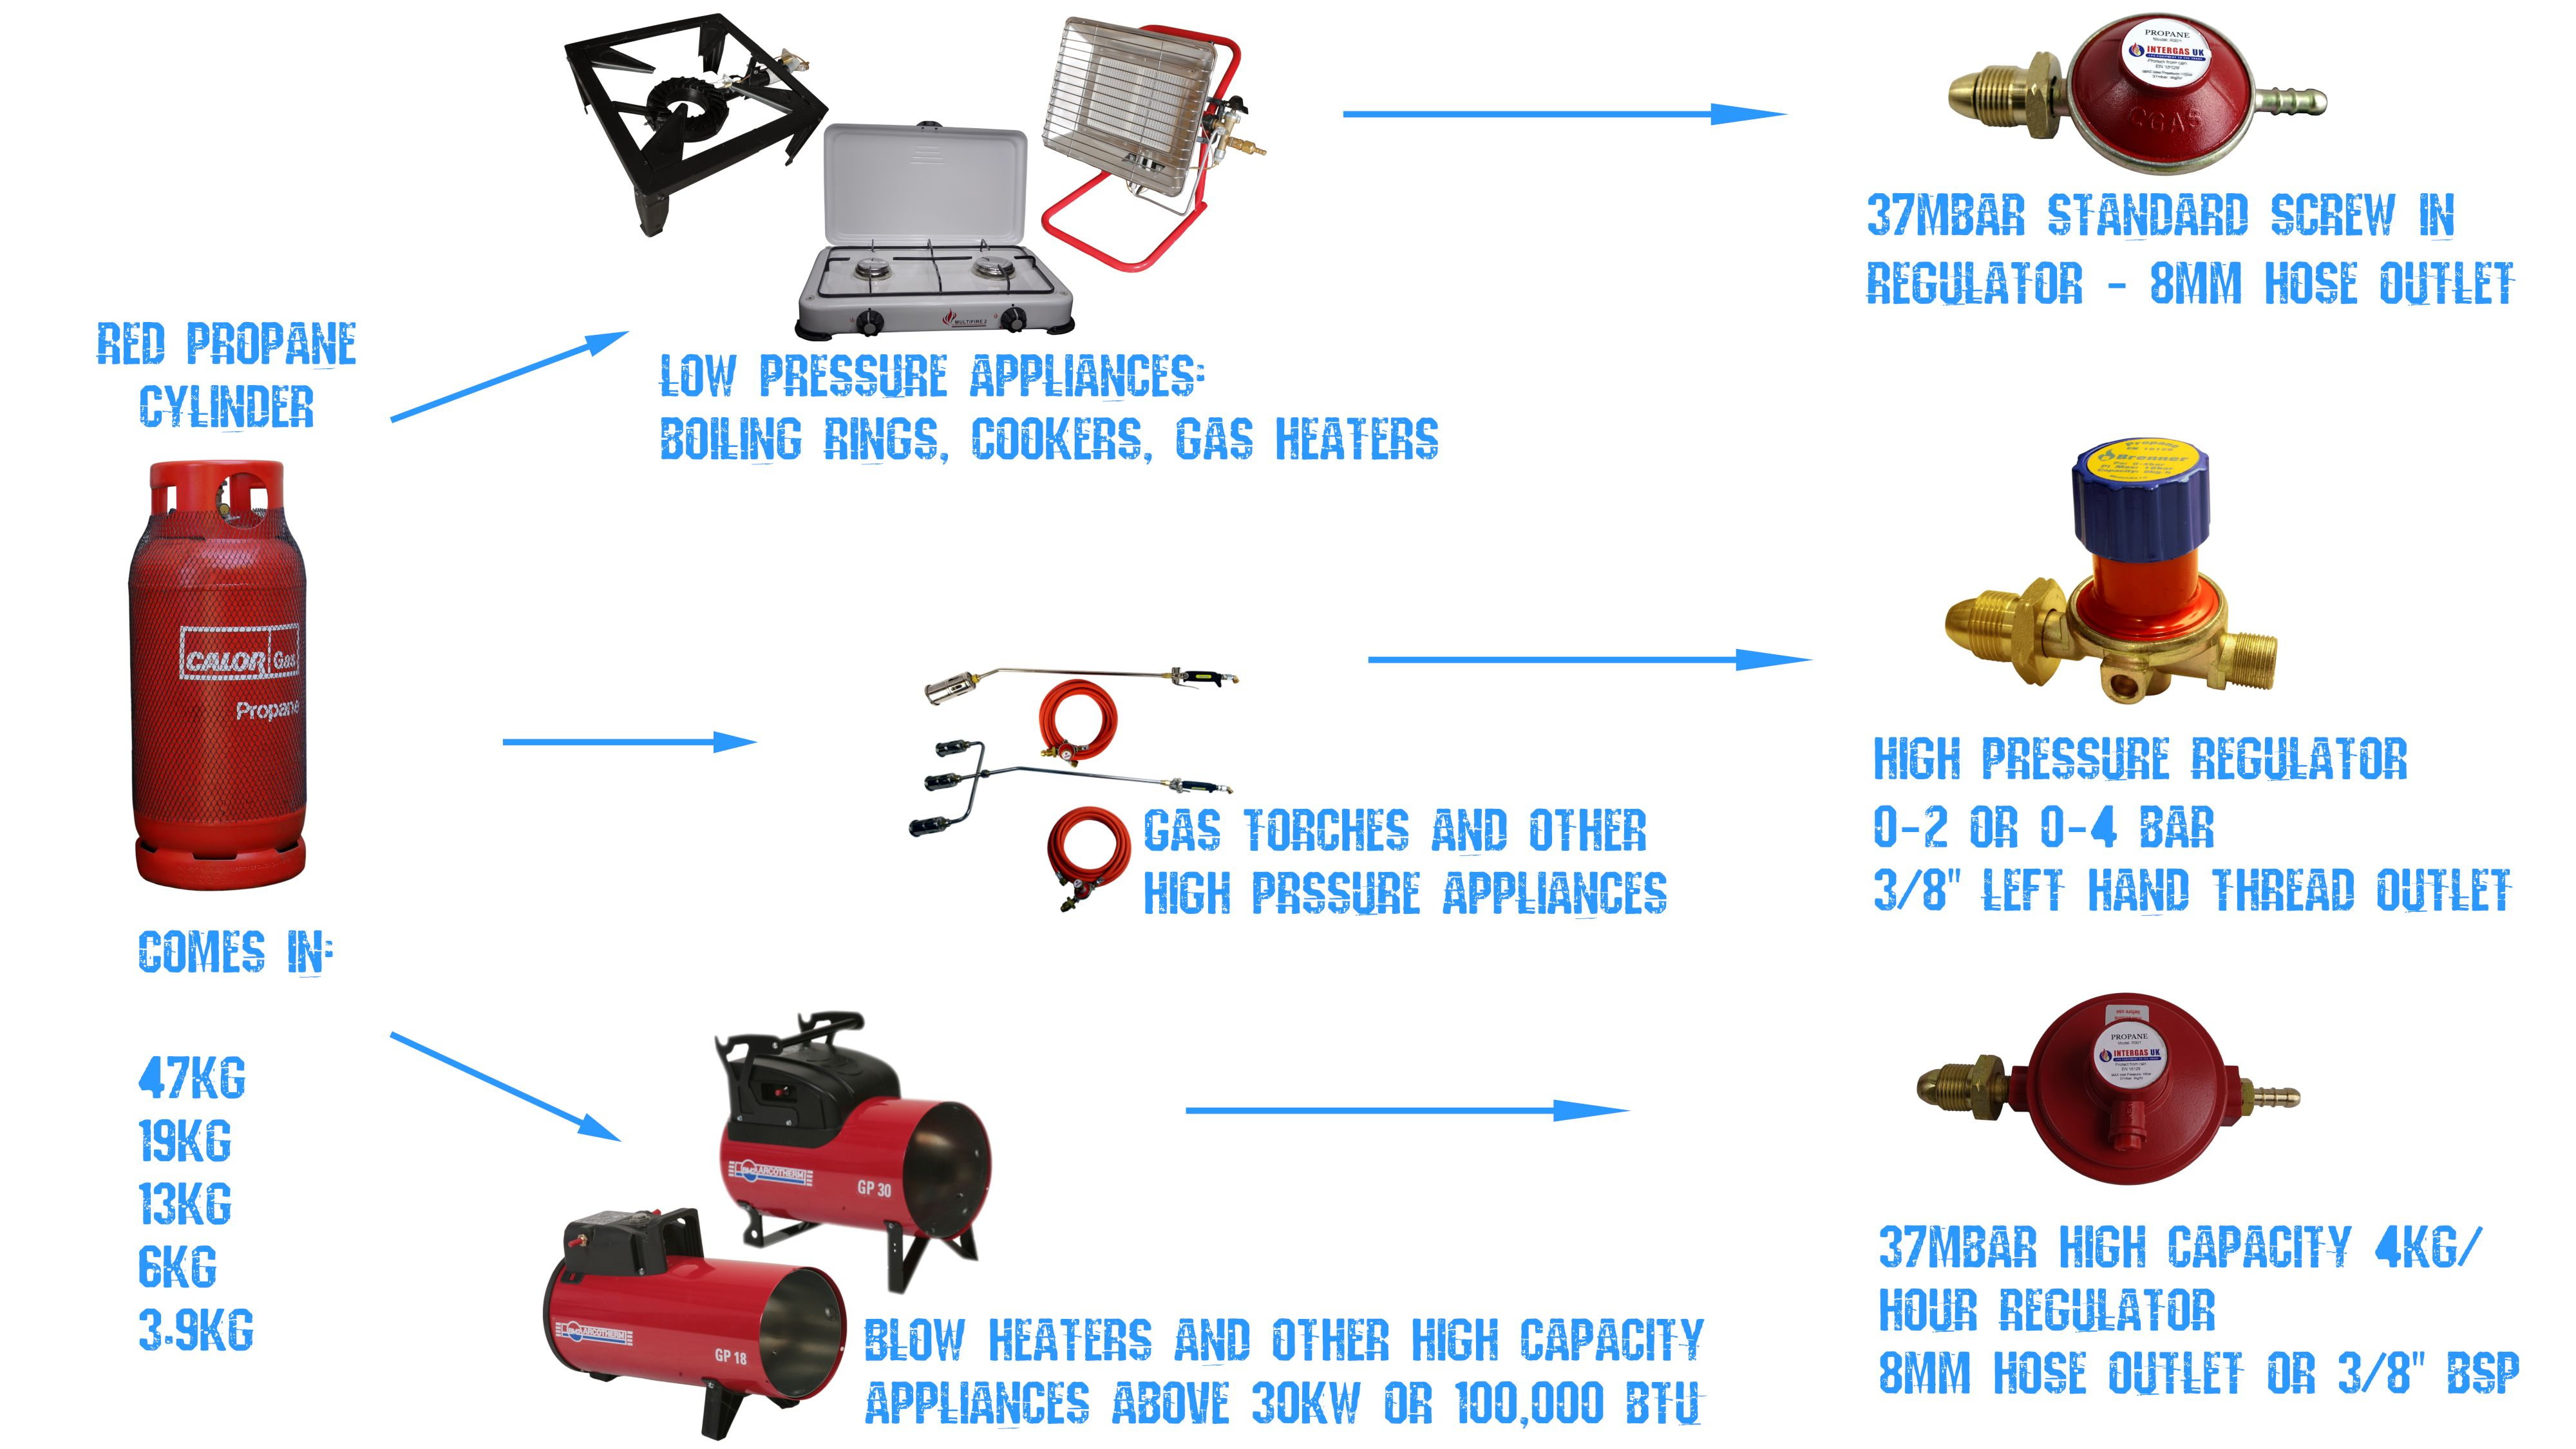 medium resolution of do you need help understanding which butane regulator to use use our chart to help you propane regulator gas gasequipment lpg cylinder cylinders